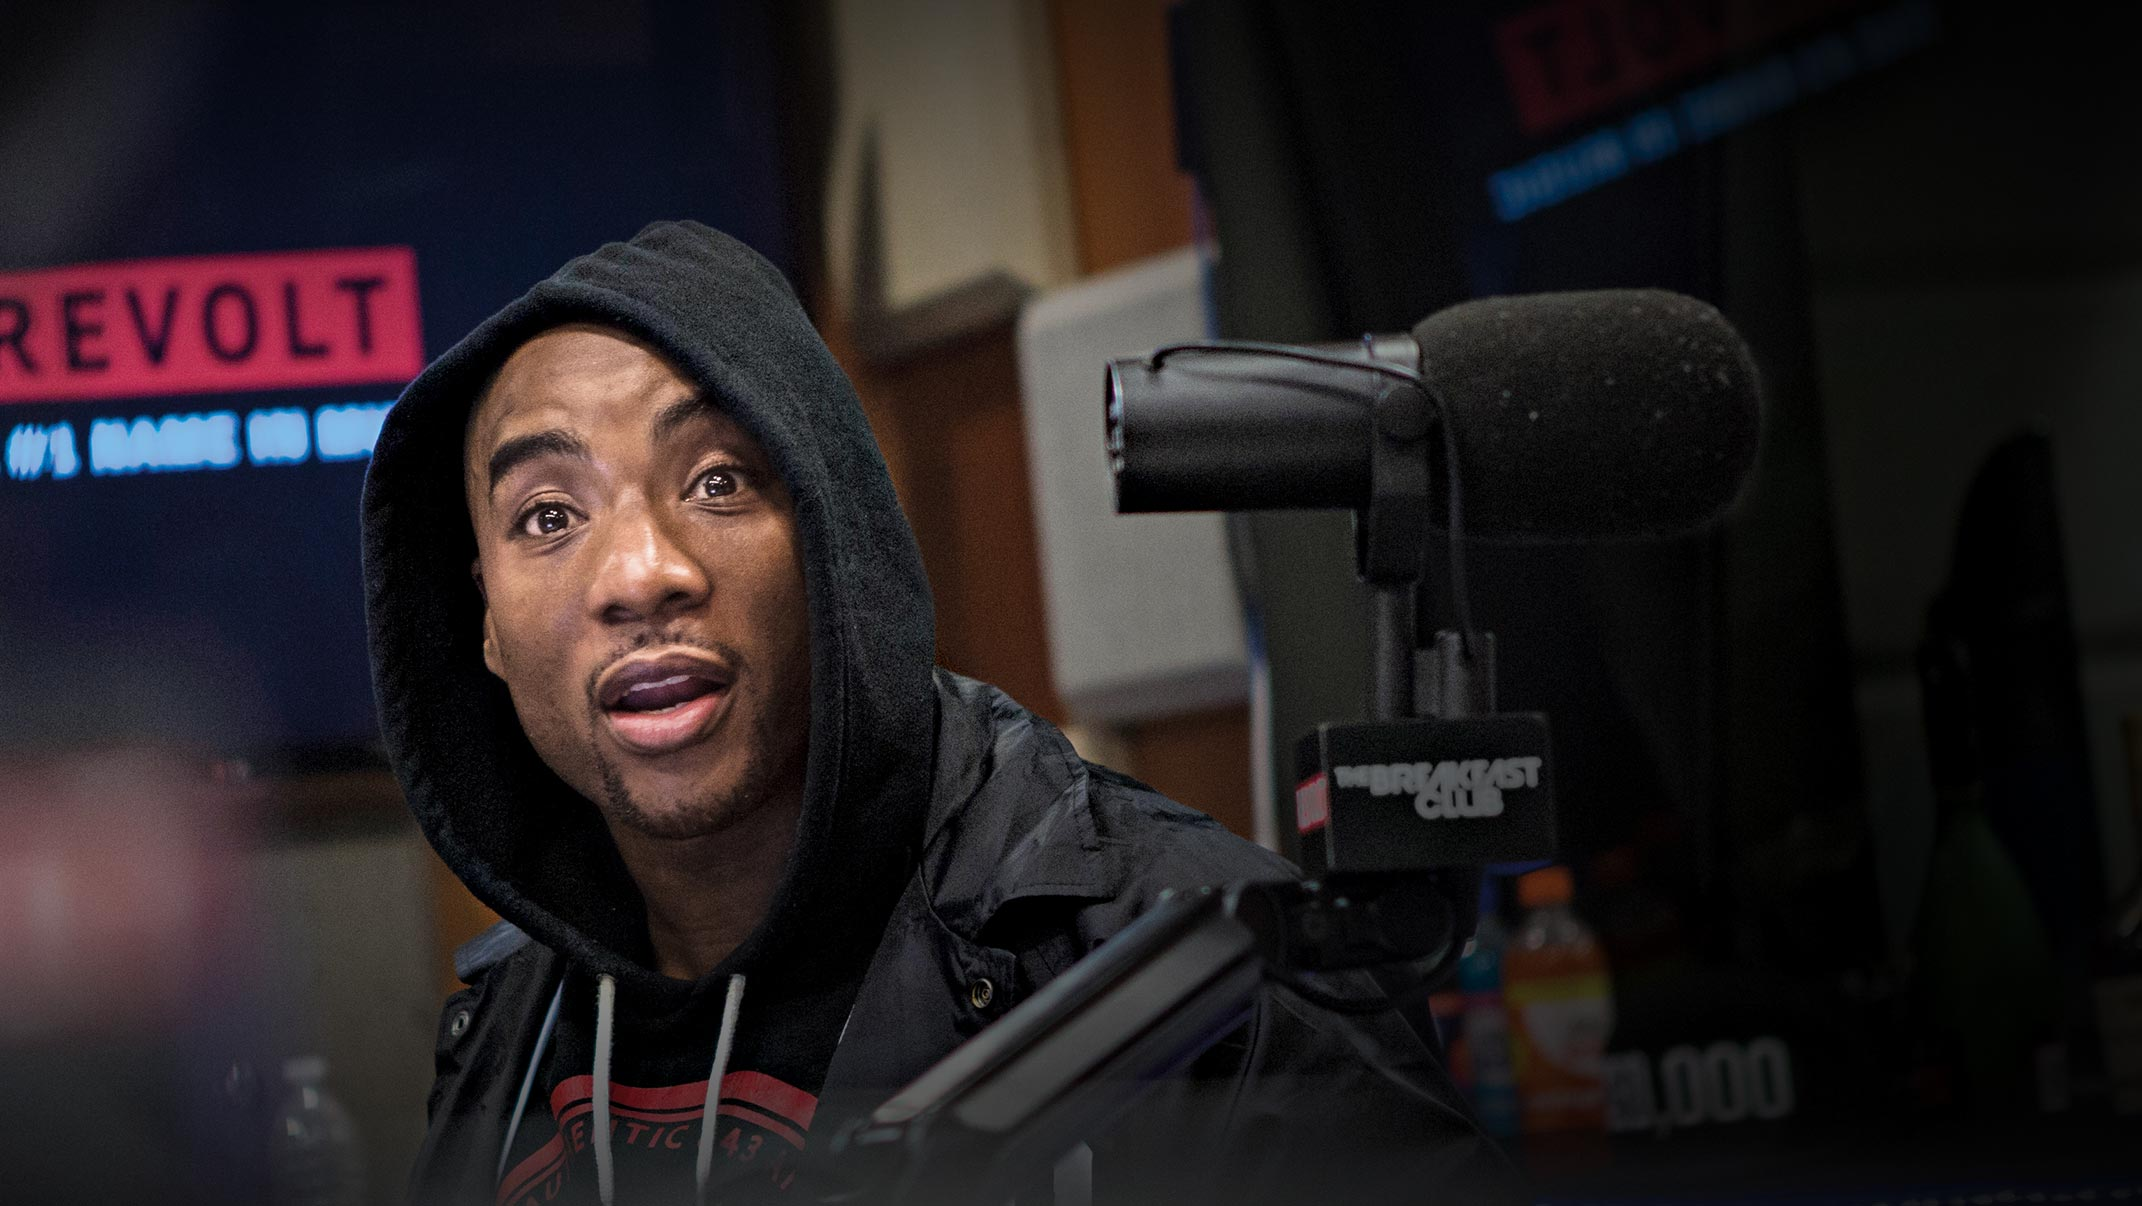 Charlamagne Tha God is best known for being co-host of the nationally syndicated hip-hop iHeartRadio program   The Breakfast Club  . He is also a social media influencer; an executive producer with his own production company, CThaGod World; and co-host of the popular podcast   Brilliant Idiots  . Born and raised in Moncks Corner in South Carolina, Charlamagne quickly rose to become one of today's most unique and compelling media personalities. His point of view and provocative celebrity interviews help drive the daily national conversation about issues related to hip-hop, race, society, and politics. He is the author of the   New York Times     Best Seller   Black Privilege: Opportunity Comes to Those Who Create It  and  Shook One: Anxiety Playing Tricks on Me (release date: Oct. 2018)   .